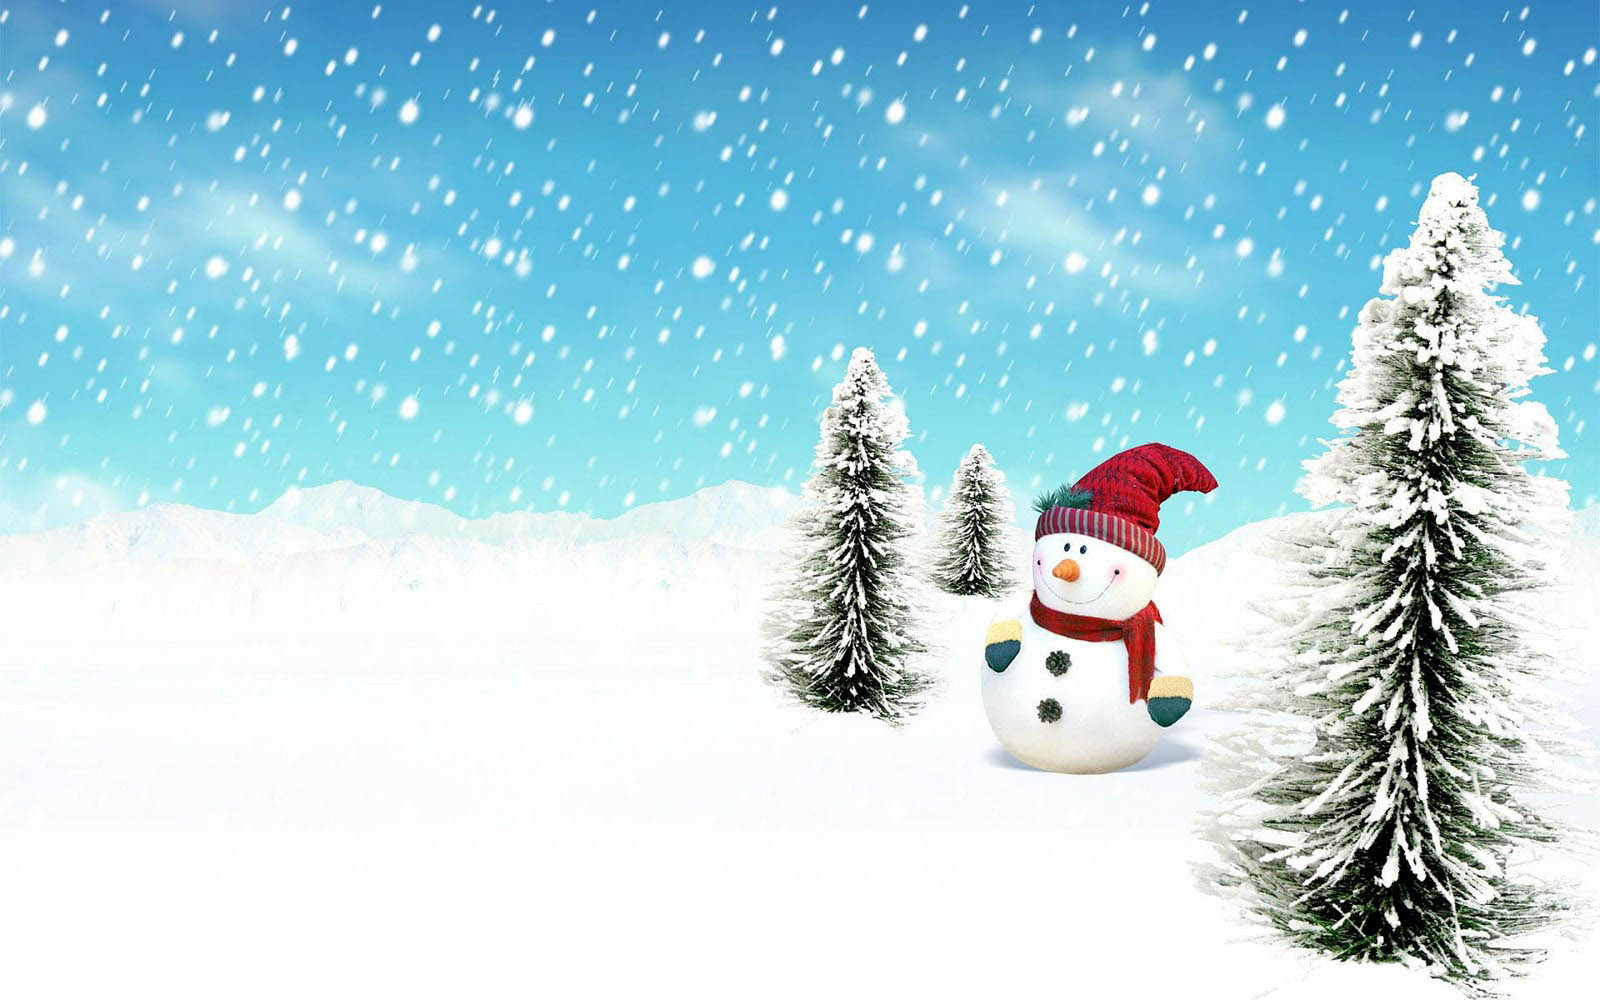 Free Snowman Backgrounds